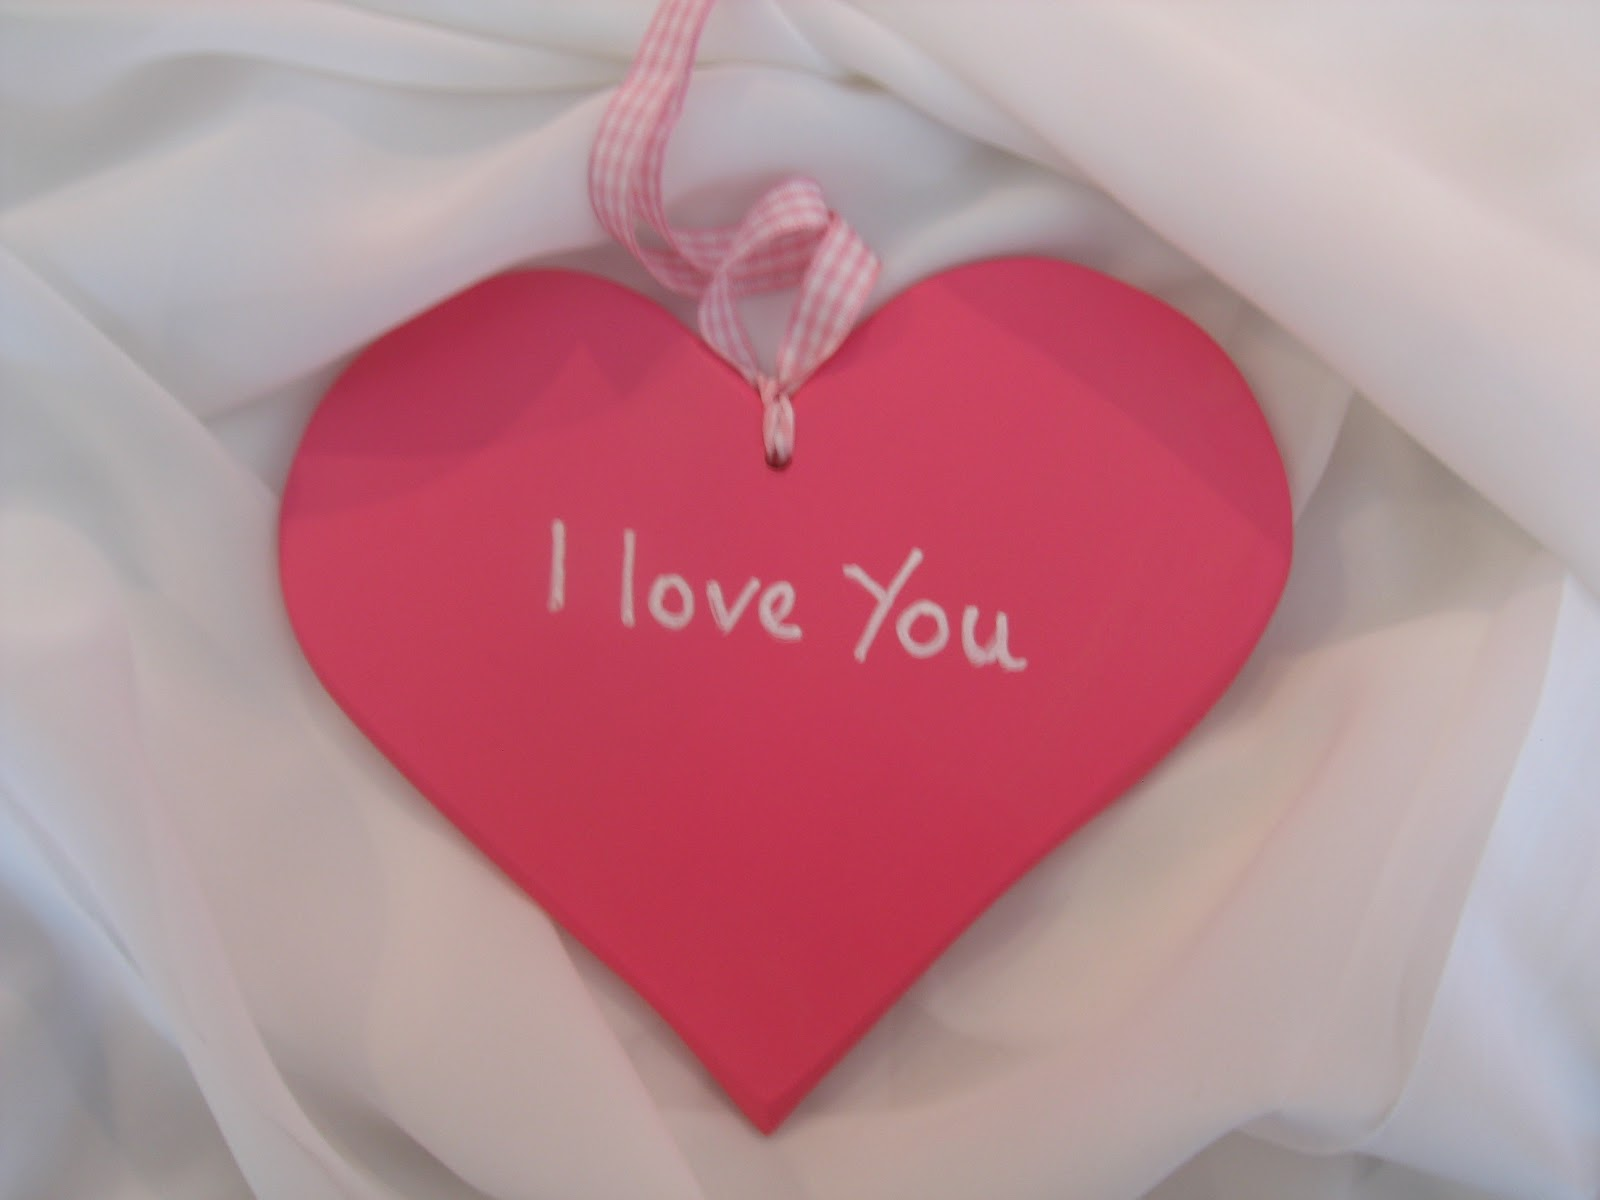 i love you hearts images - photo #47